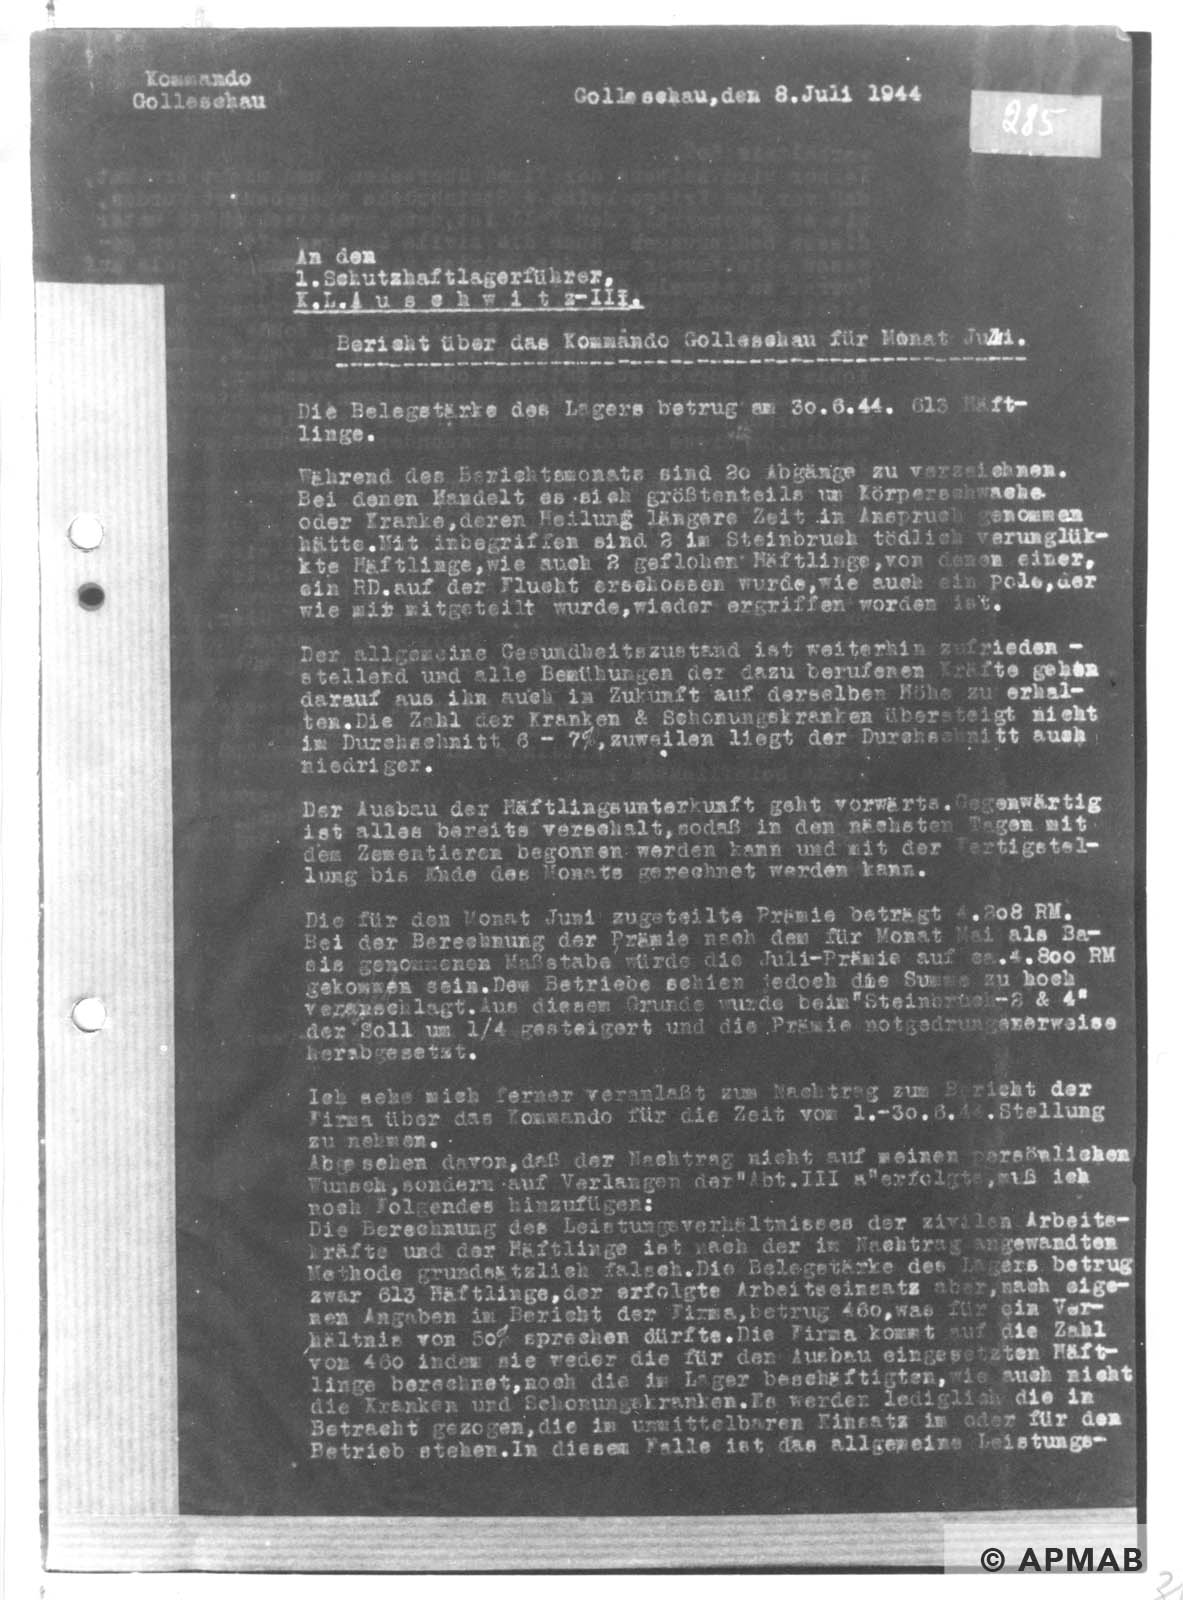 Report on Golleschau sub camp June 1944 APMAB nr inw. 30523 str. 31